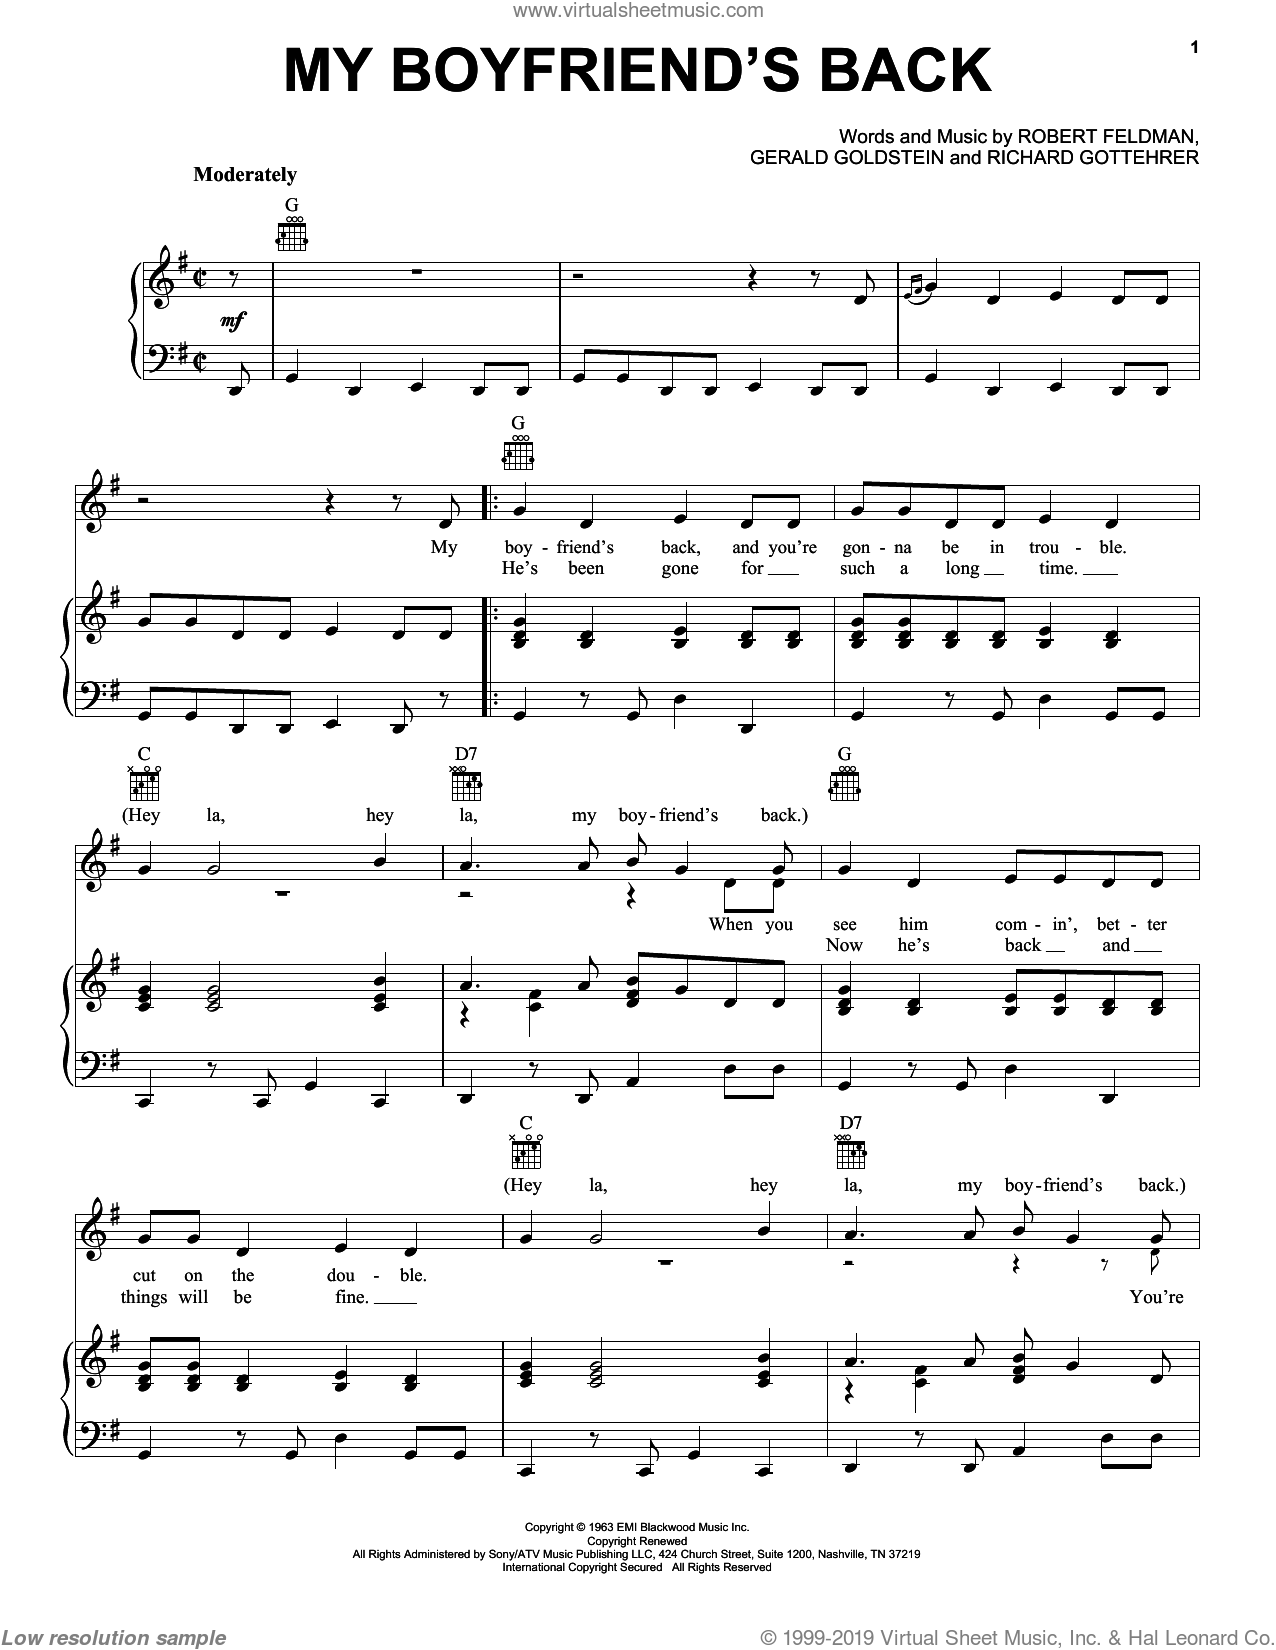 My Boyfriend's Back sheet music for voice, piano or guitar by Bobby Comstock, The Angels, Gerald Goldstein, Richard Gottehrer and Robert Feldman, intermediate skill level